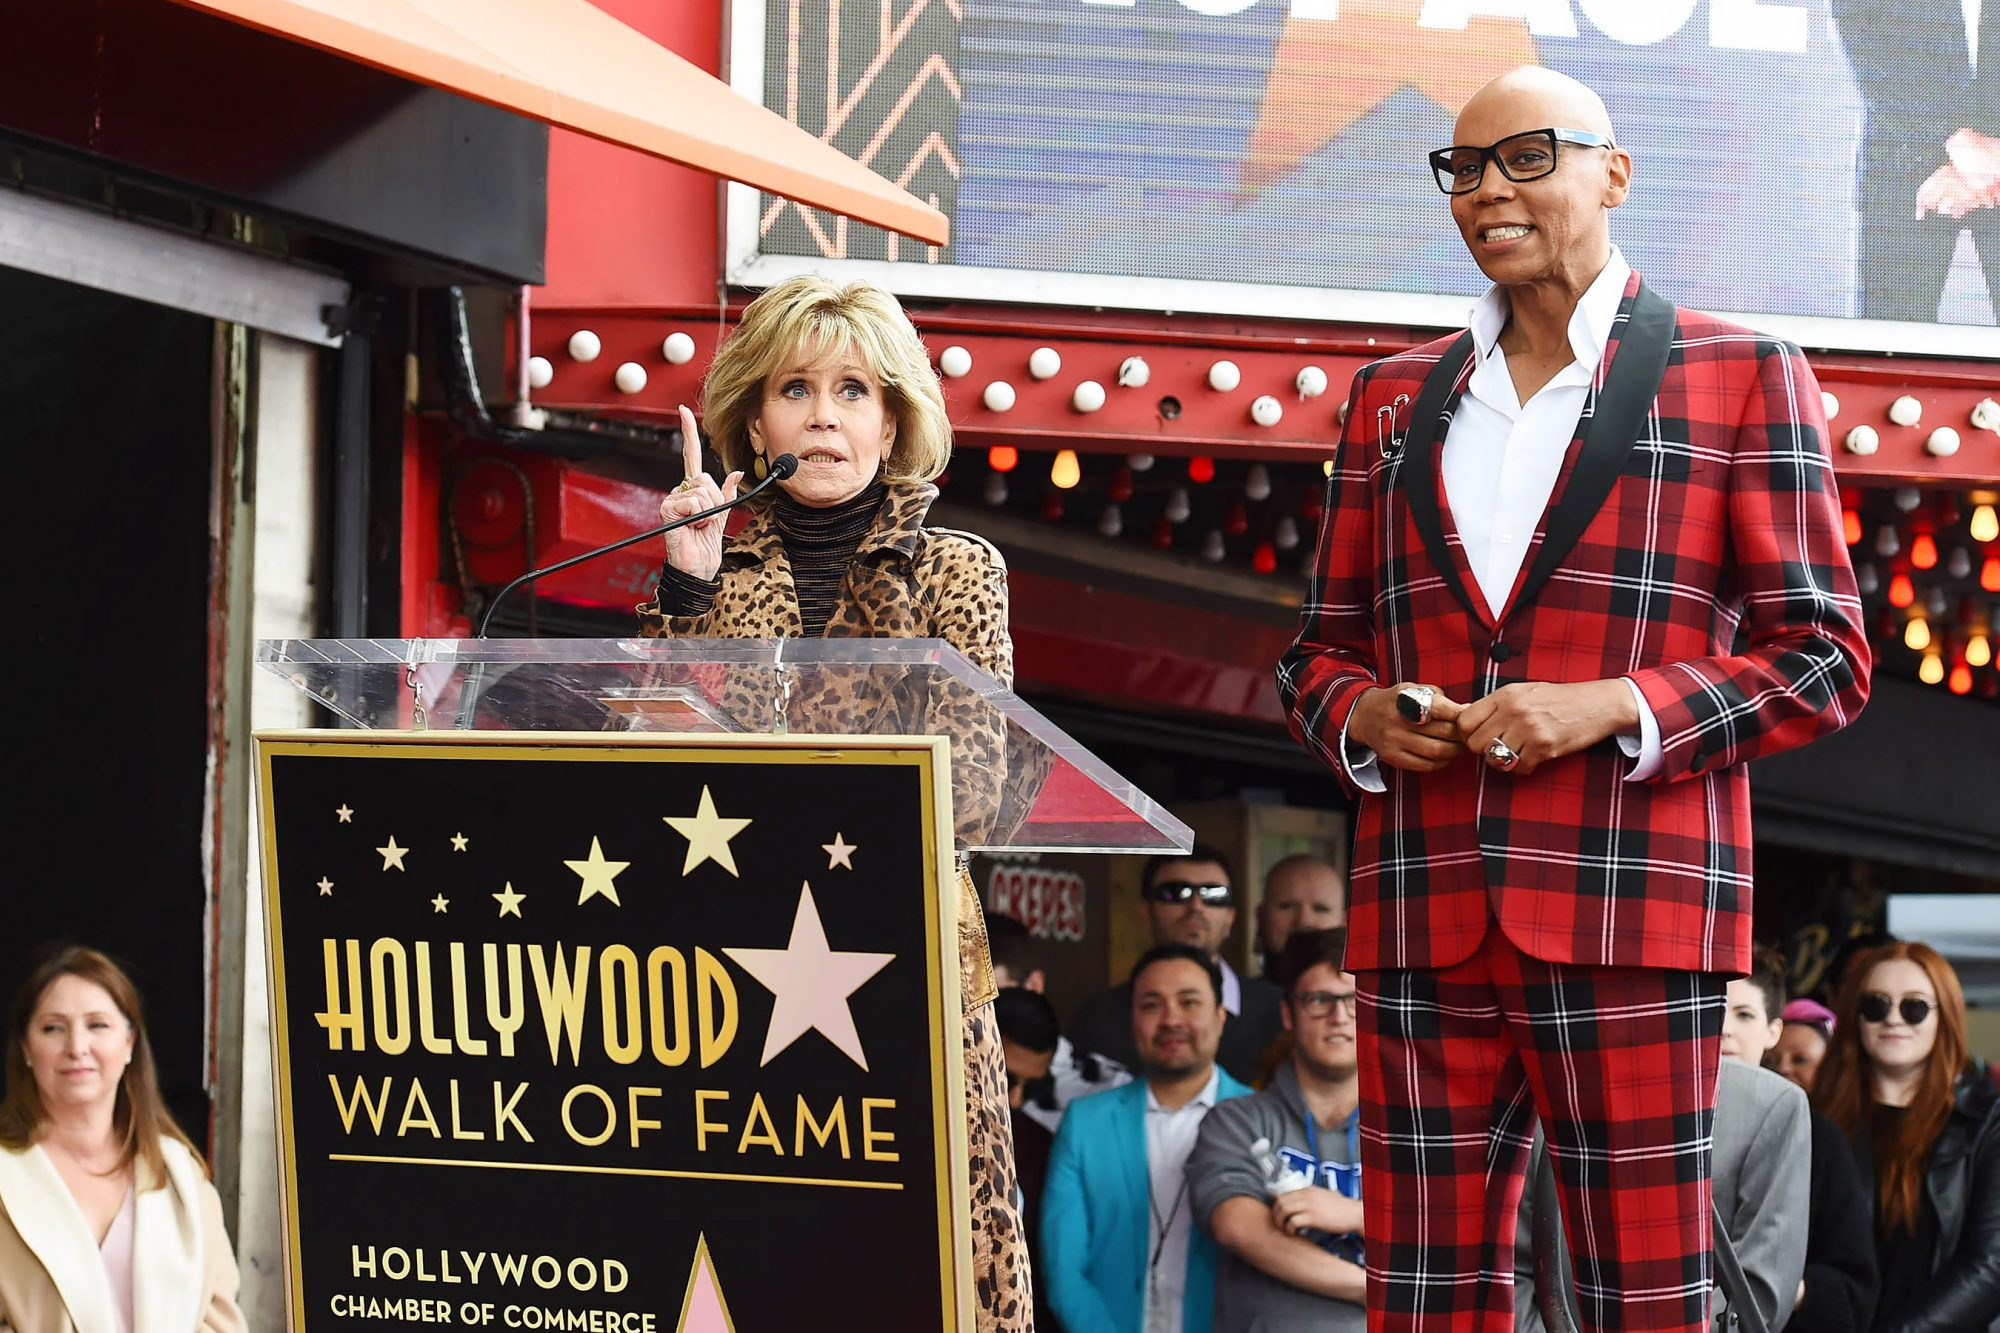 Hollywood Chamber of Commerce Honors RuPaul With Star on Hollywood Walk of Fame